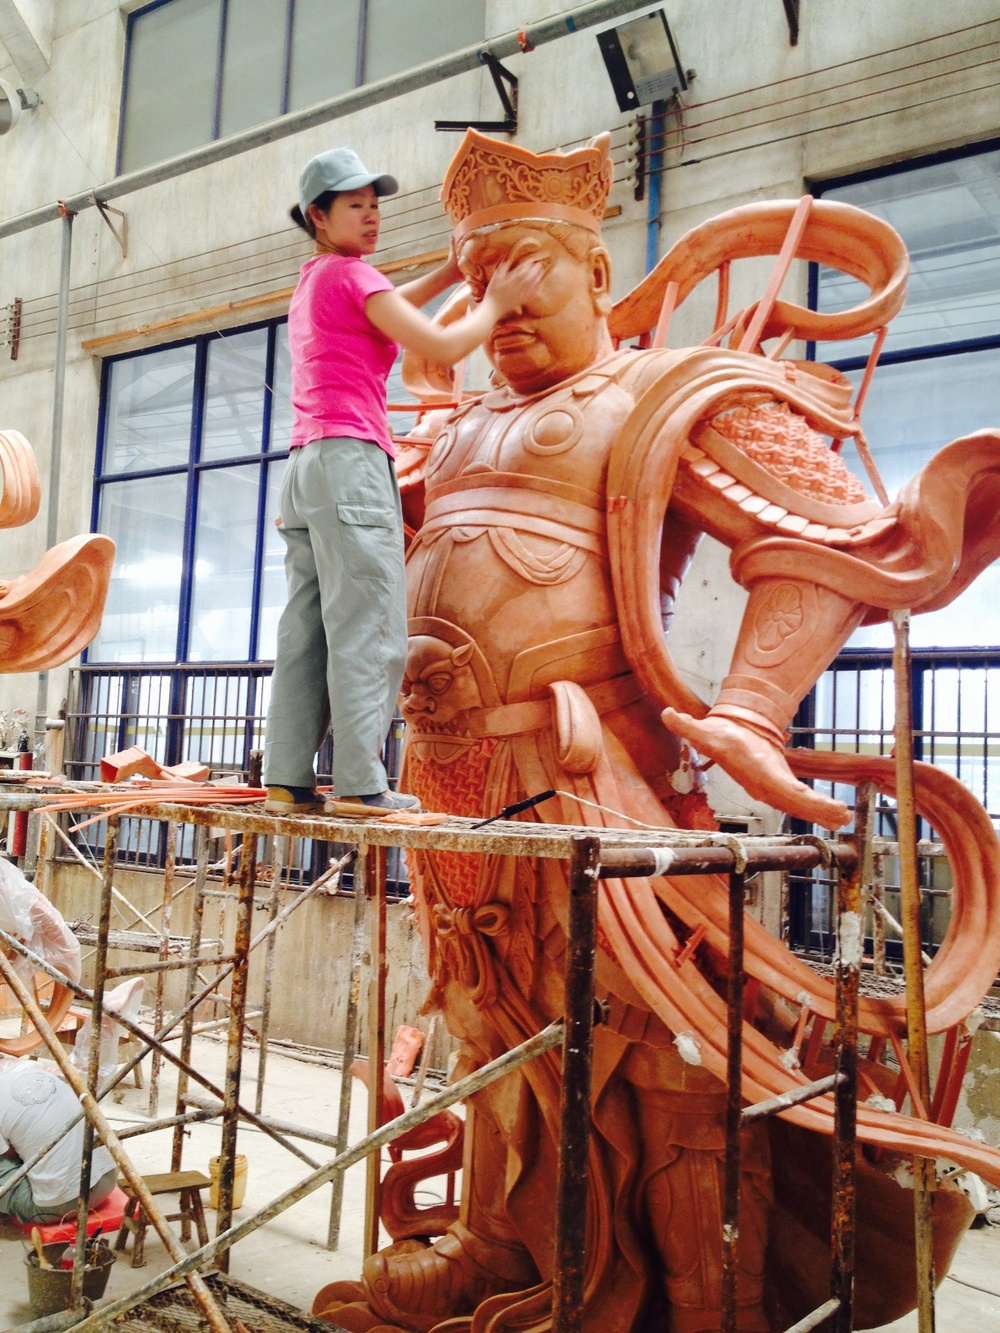 Wax version of a Chinese sculptor's work in progress which will soon be cast in a single-pour via lost-wax bronze, TQ Art Foundry China.